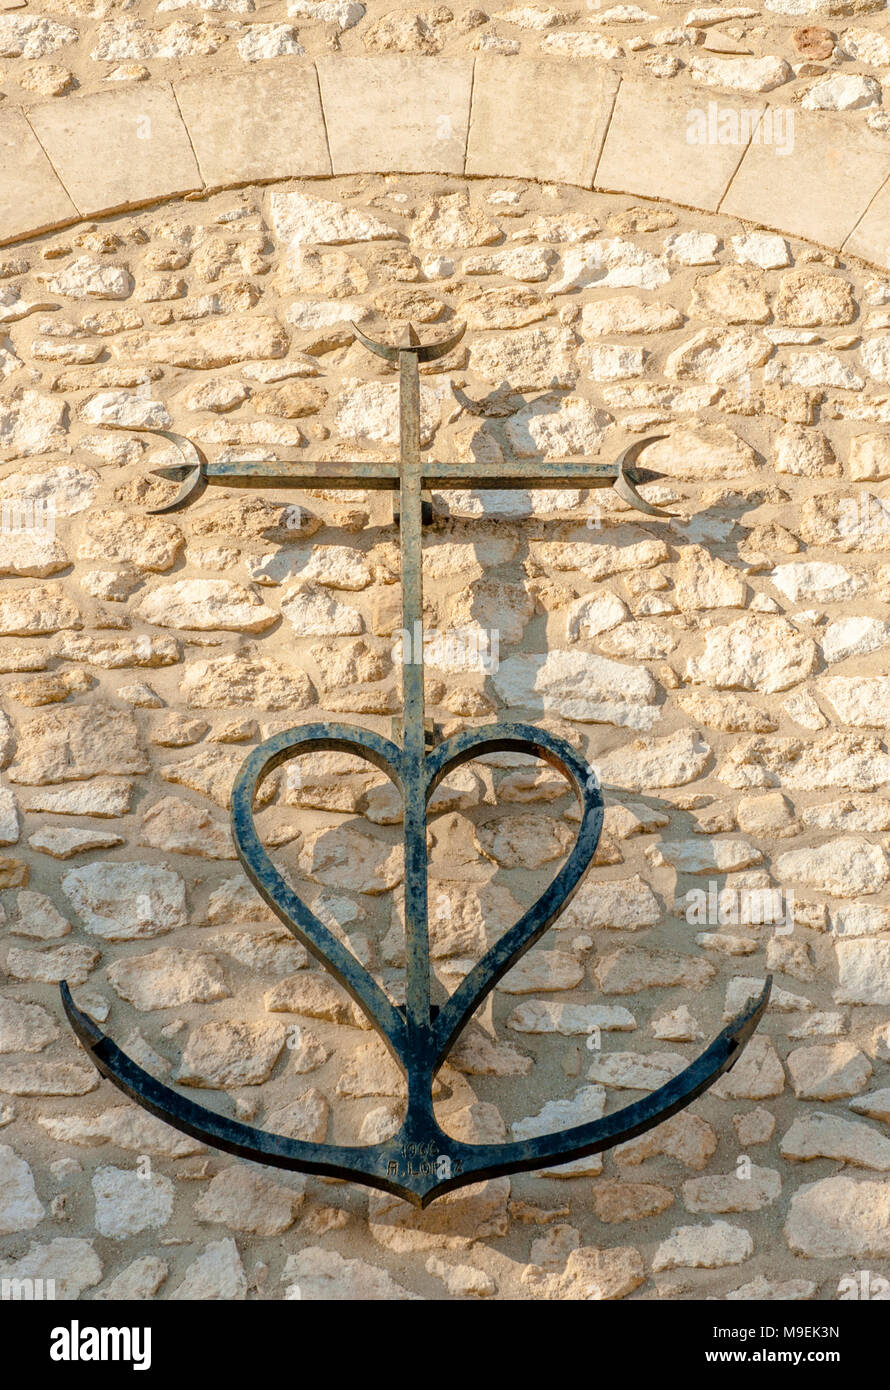 The anchored heart is a typical symbol of the Camargue region in the south of France and often found particularly on church walls. - Stock Image